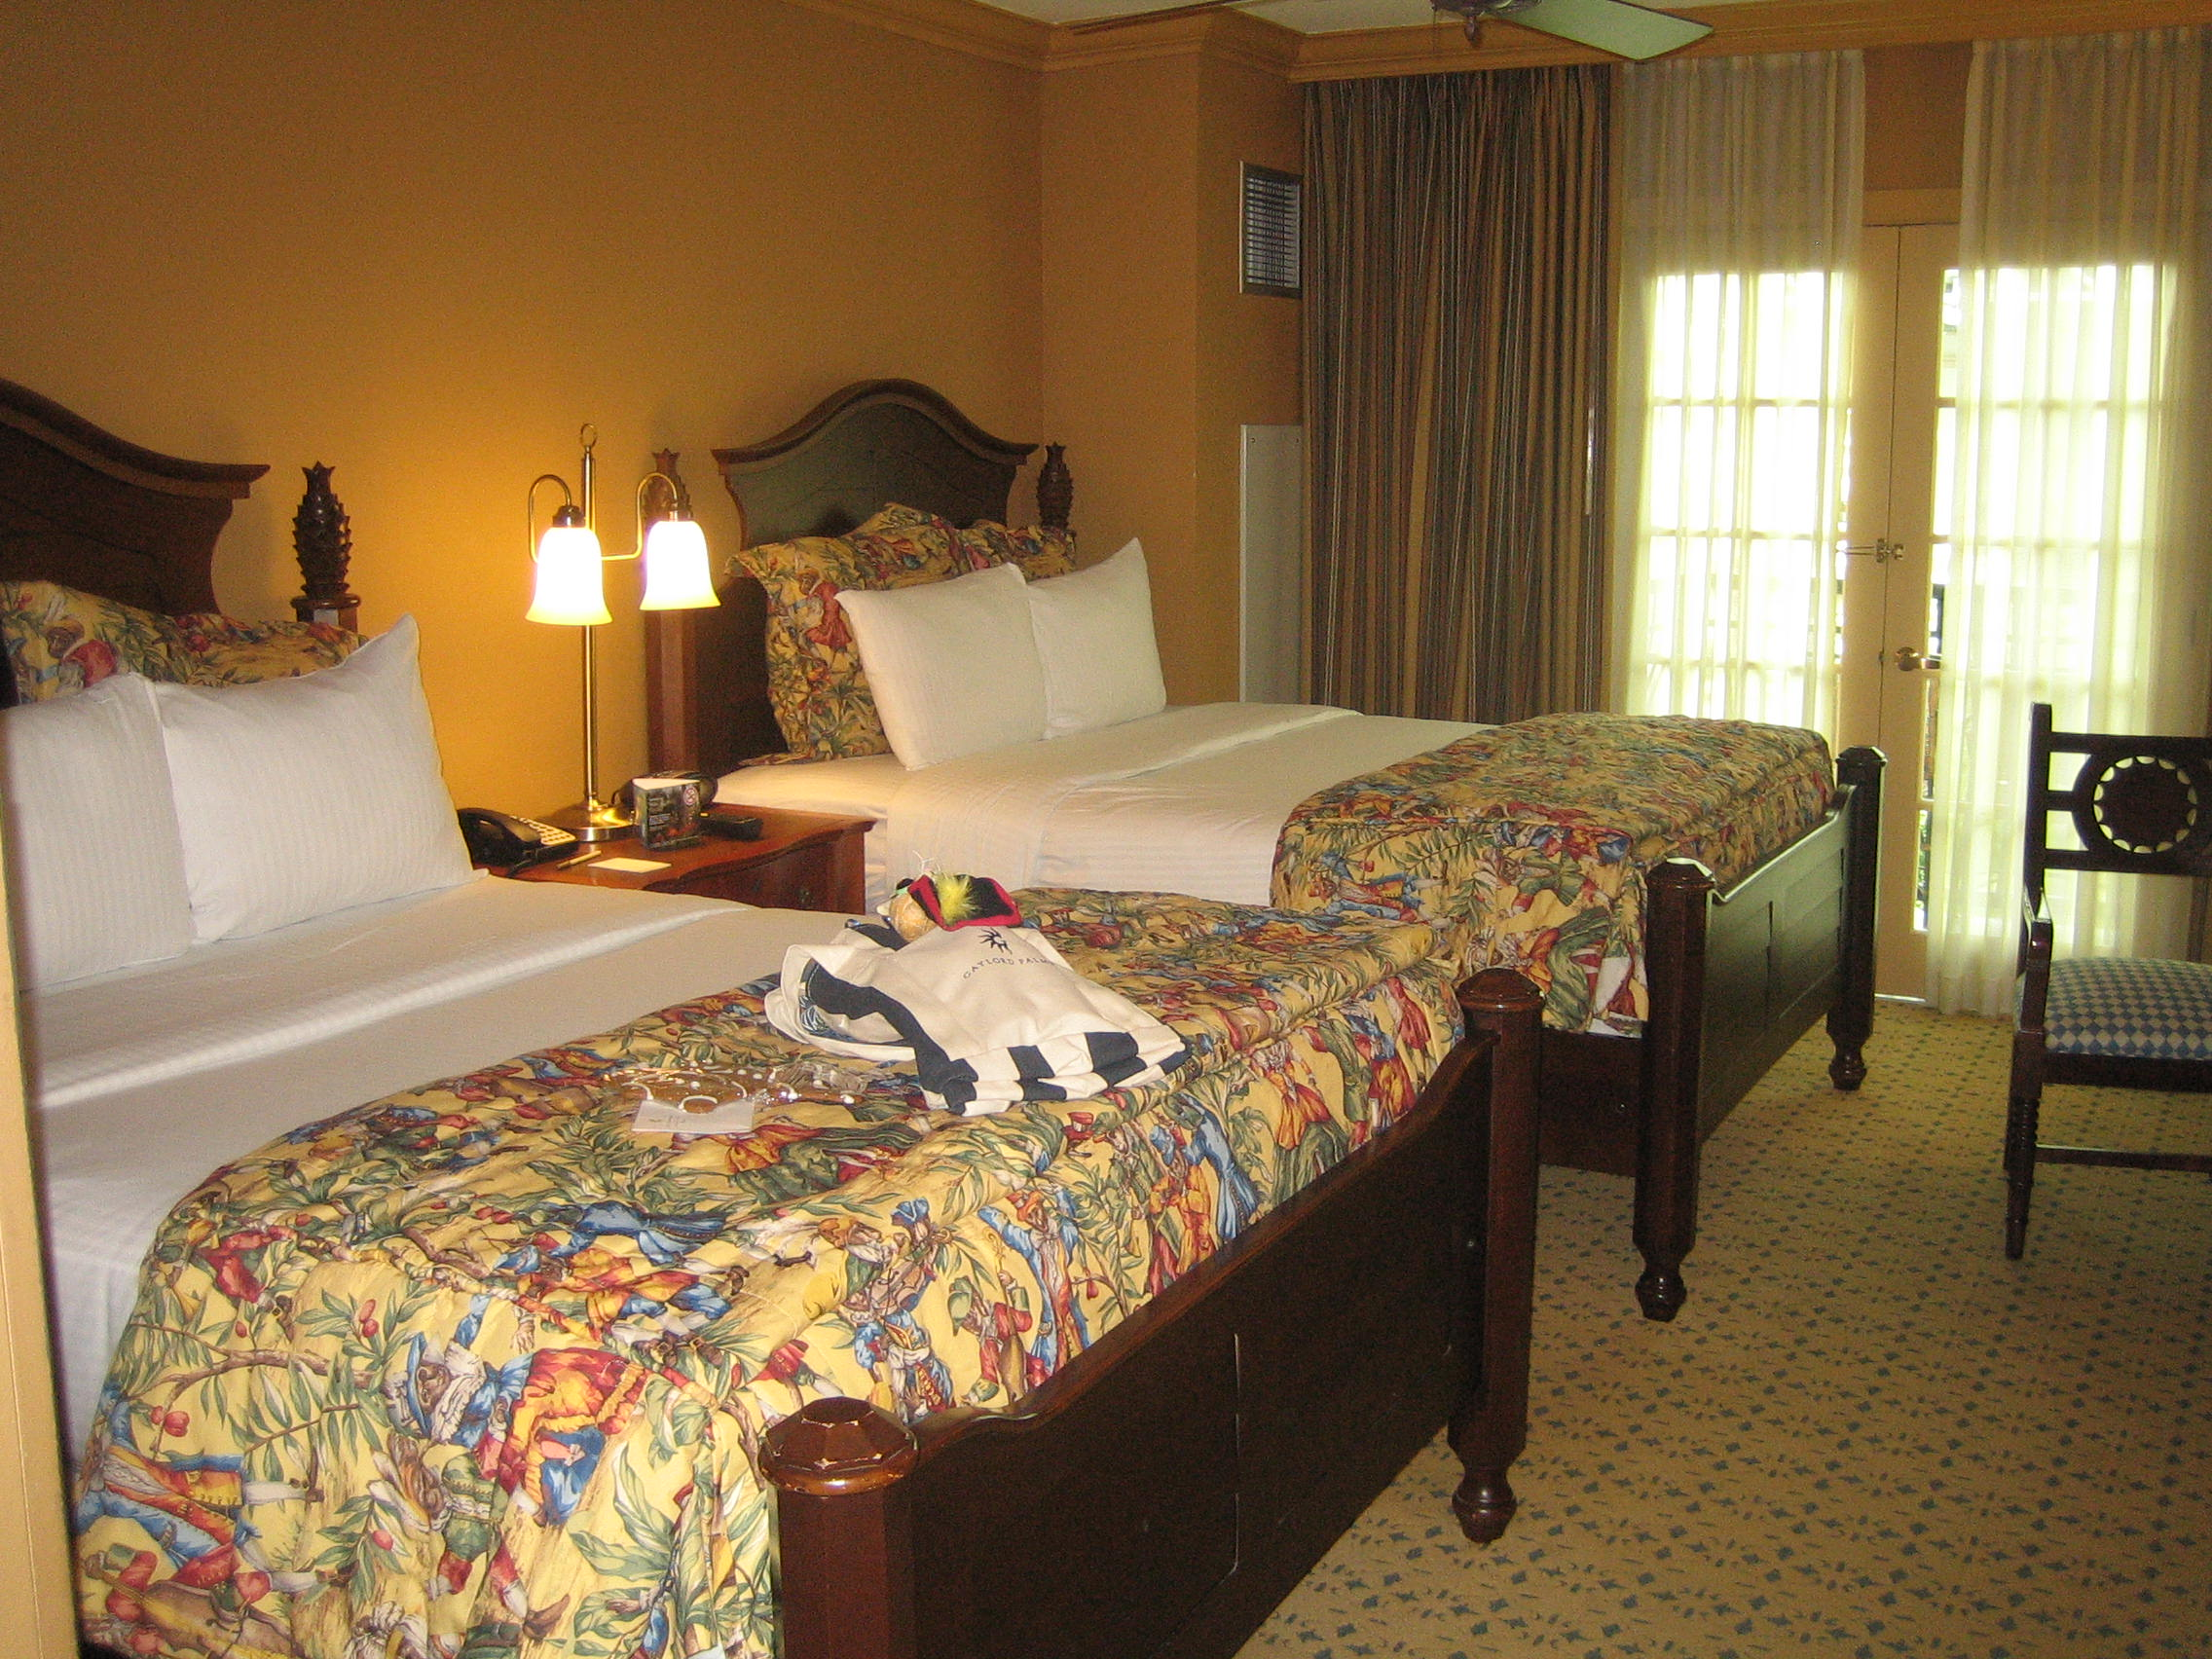 Photo Tour Of Our Room At Gaylord Palms Orlando Resort